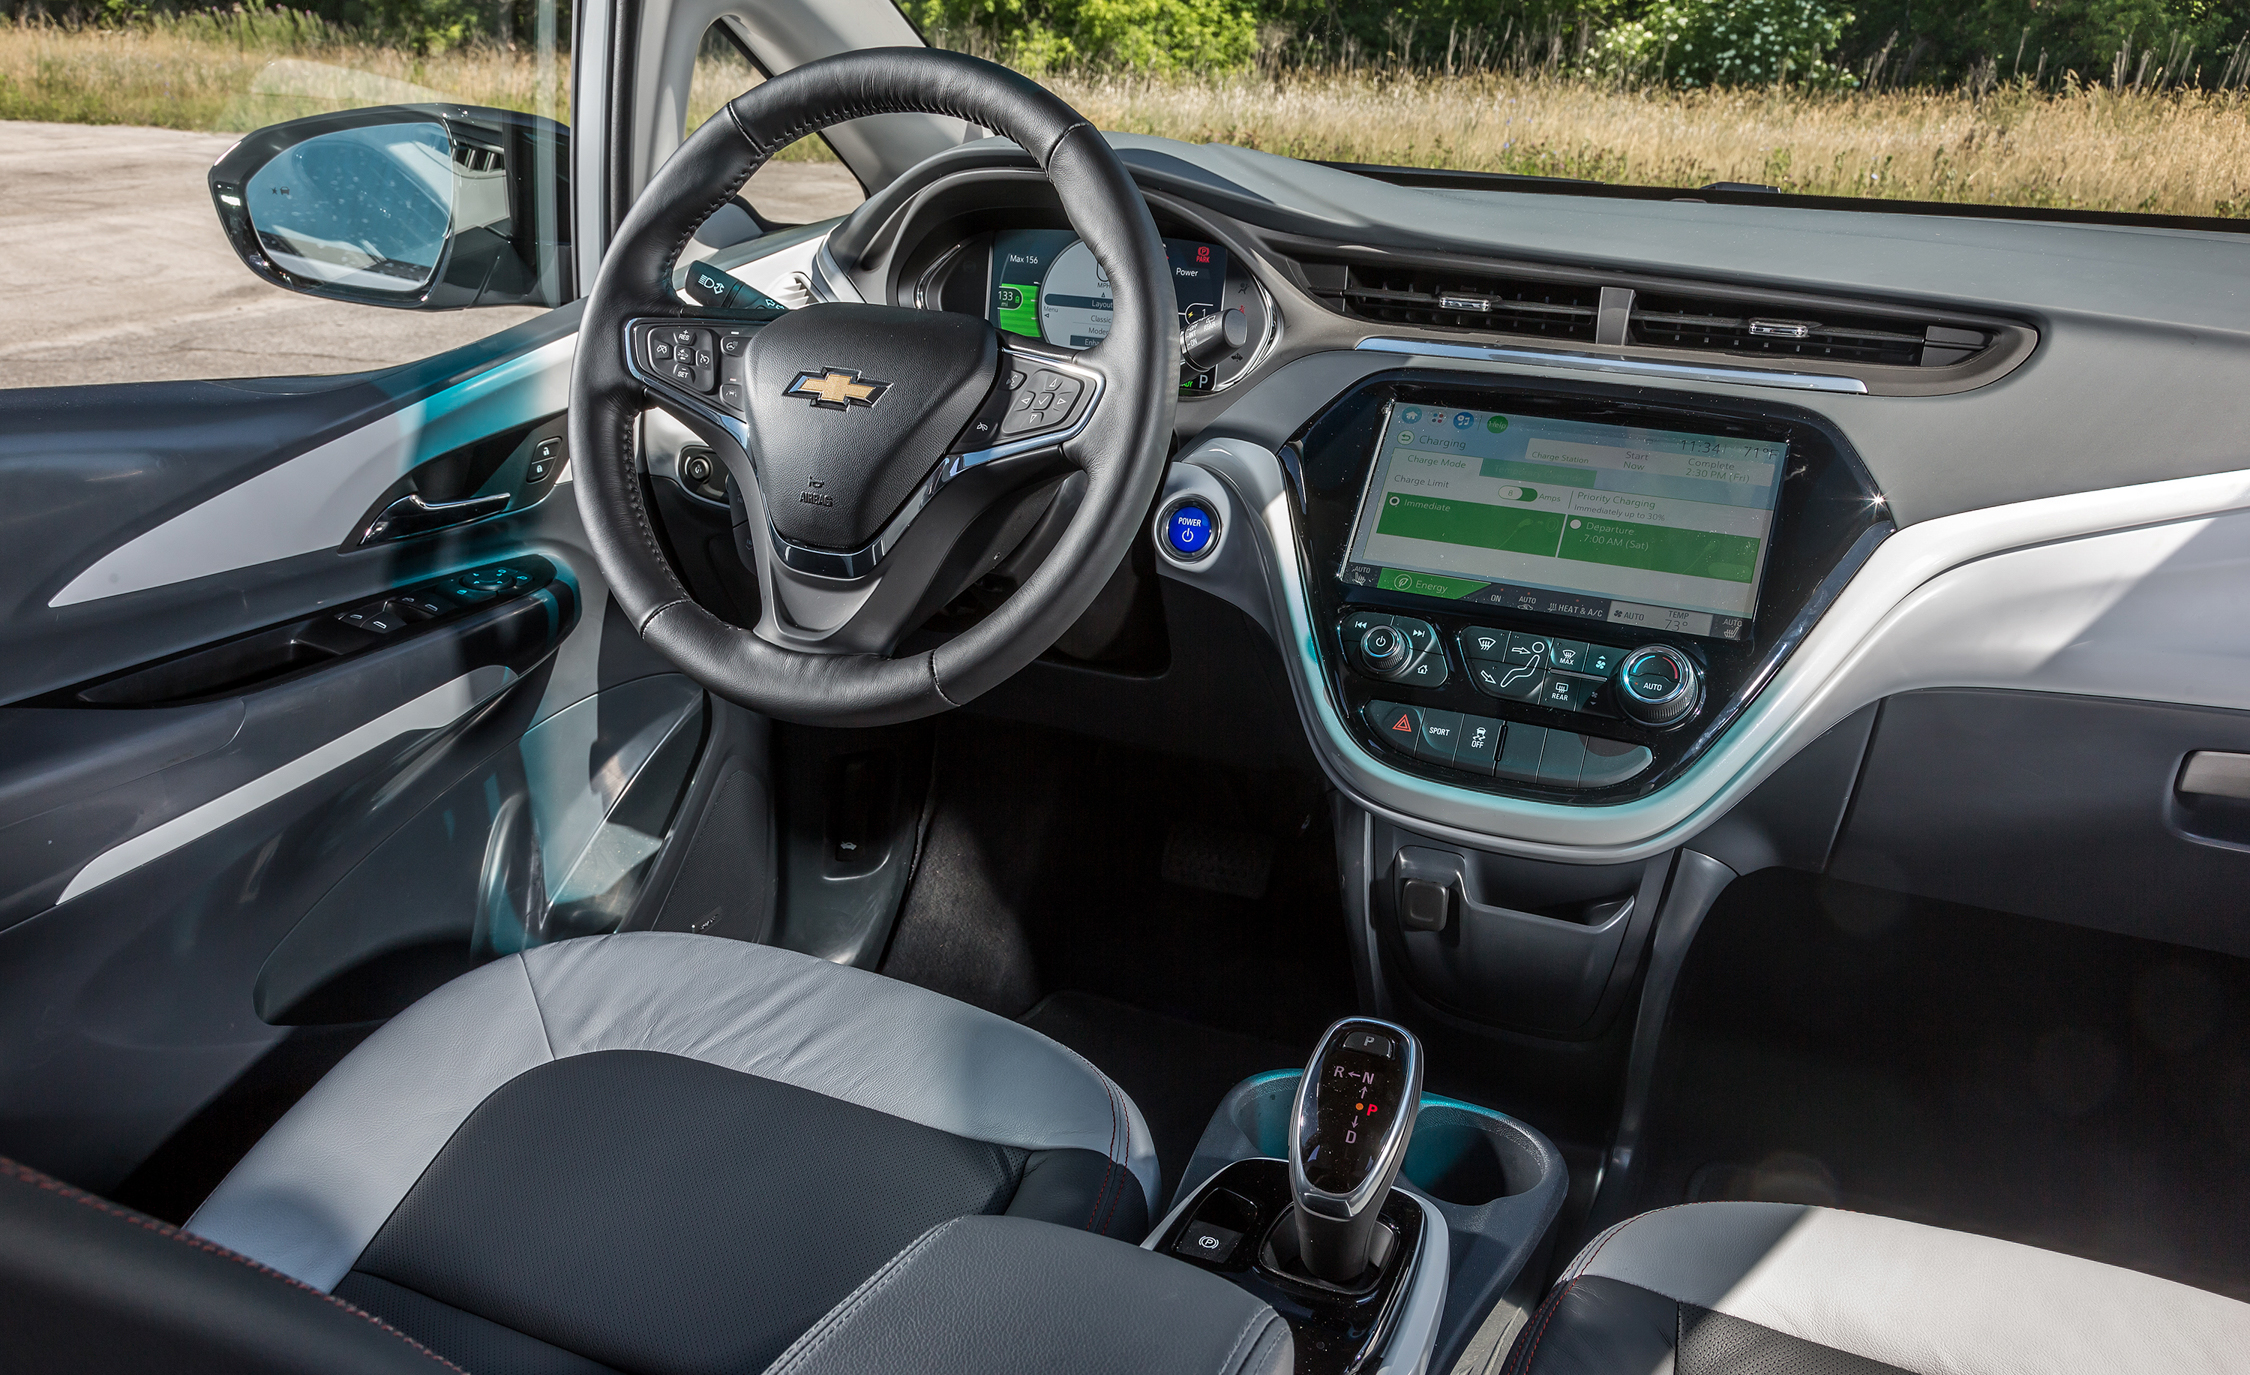 2017 Chevrolet Bolt Ev Interior Cockpit (View 11 of 12)